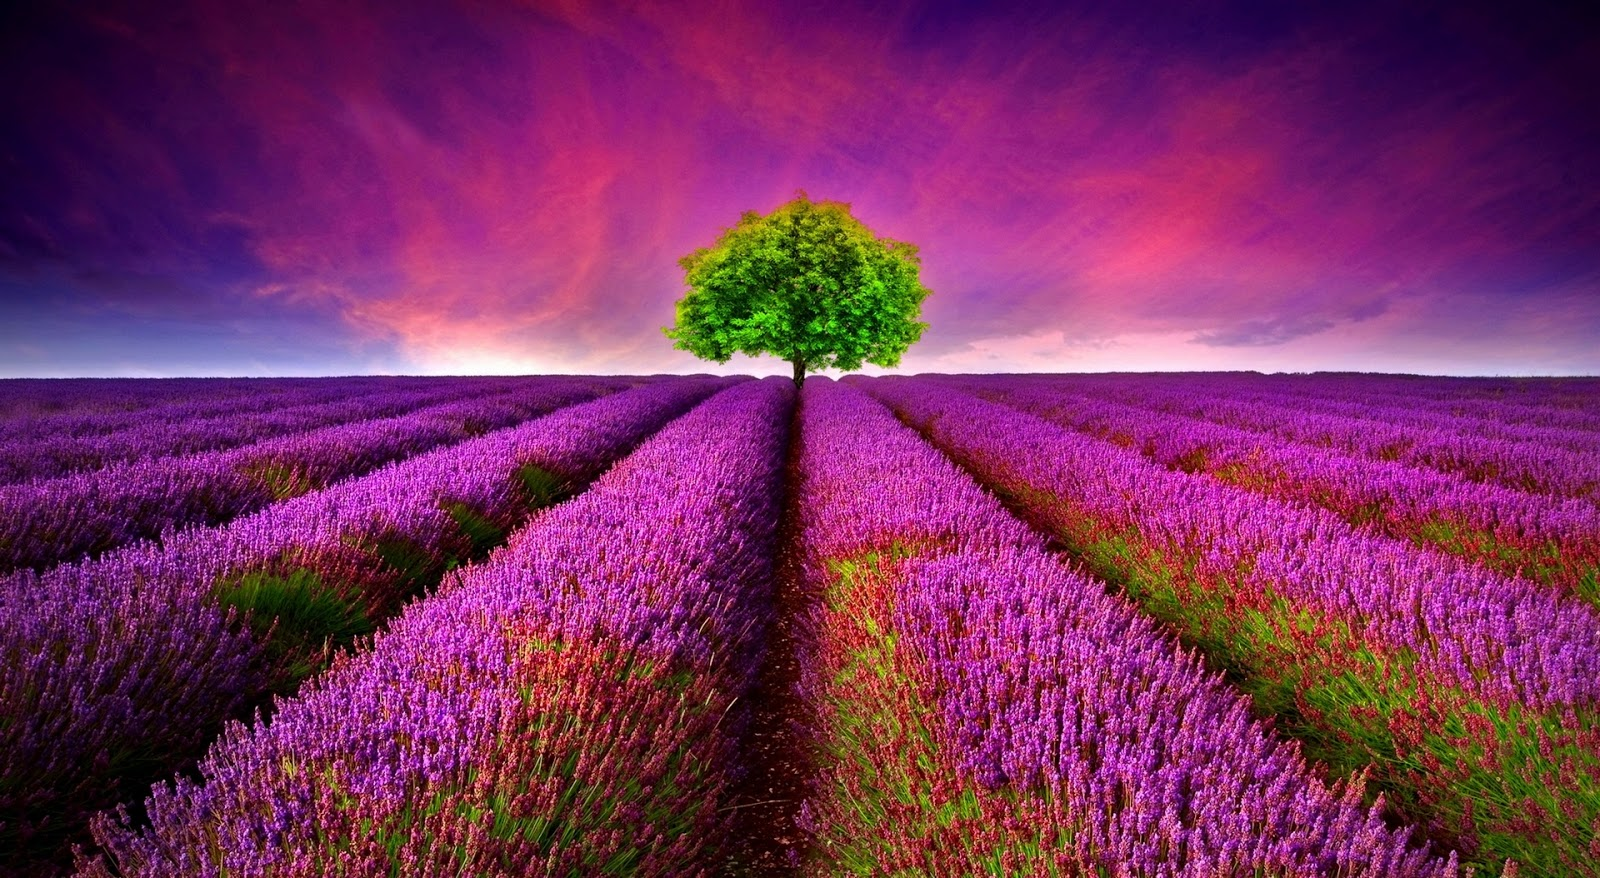 free beautiful nature wallpapers - photo #29